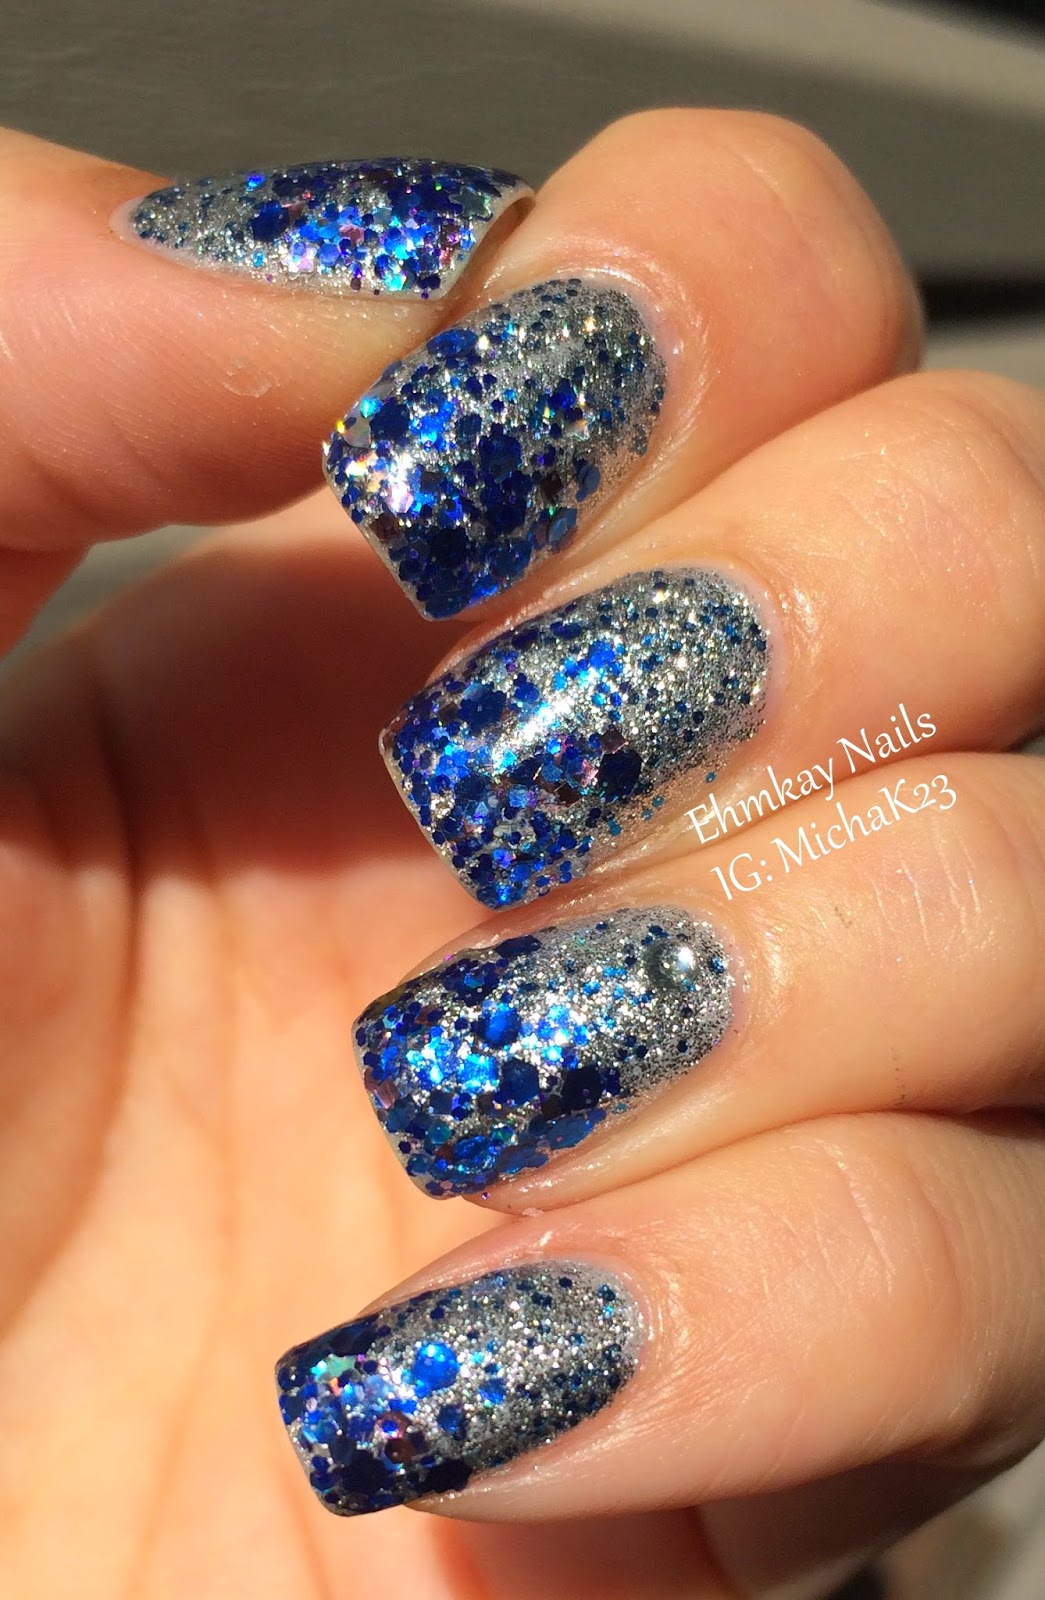 Blue And Silver Decoration Living Room: Ehmkay Nails: Blue And Silver Glitter Gradient For My